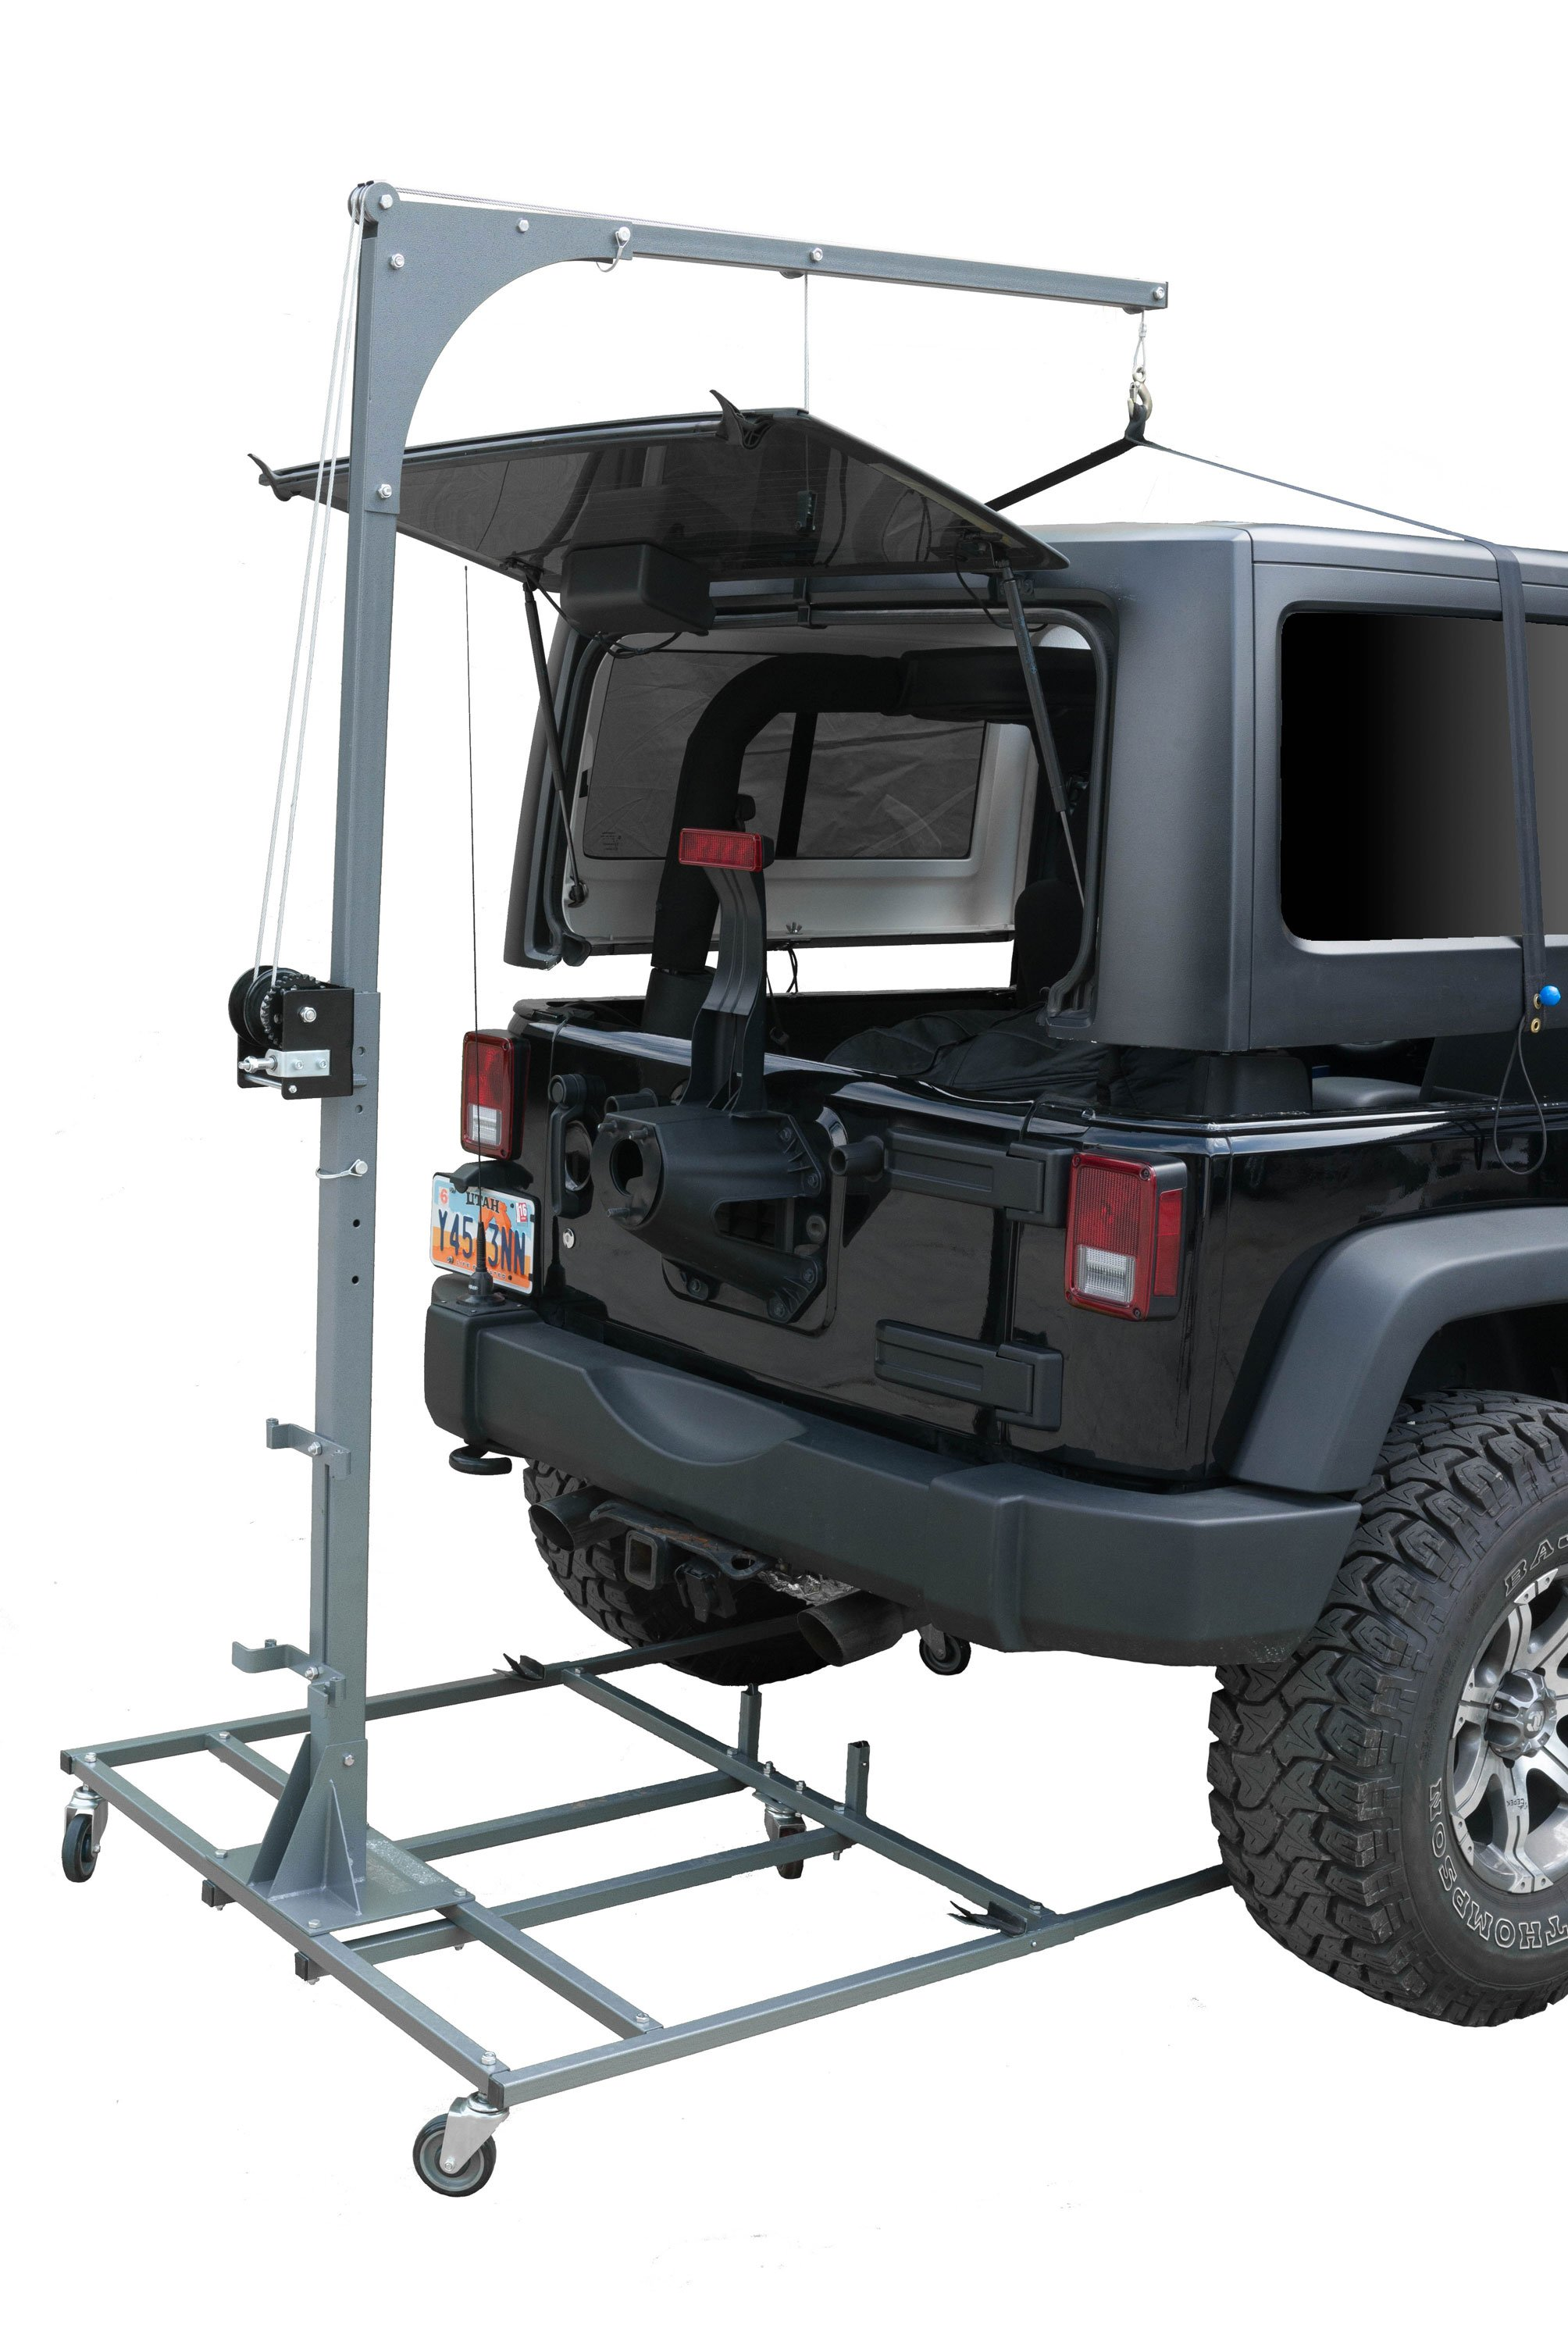 Hoist A Cart Base Jeep Tops Wrangler Accessories Jeep Wranger